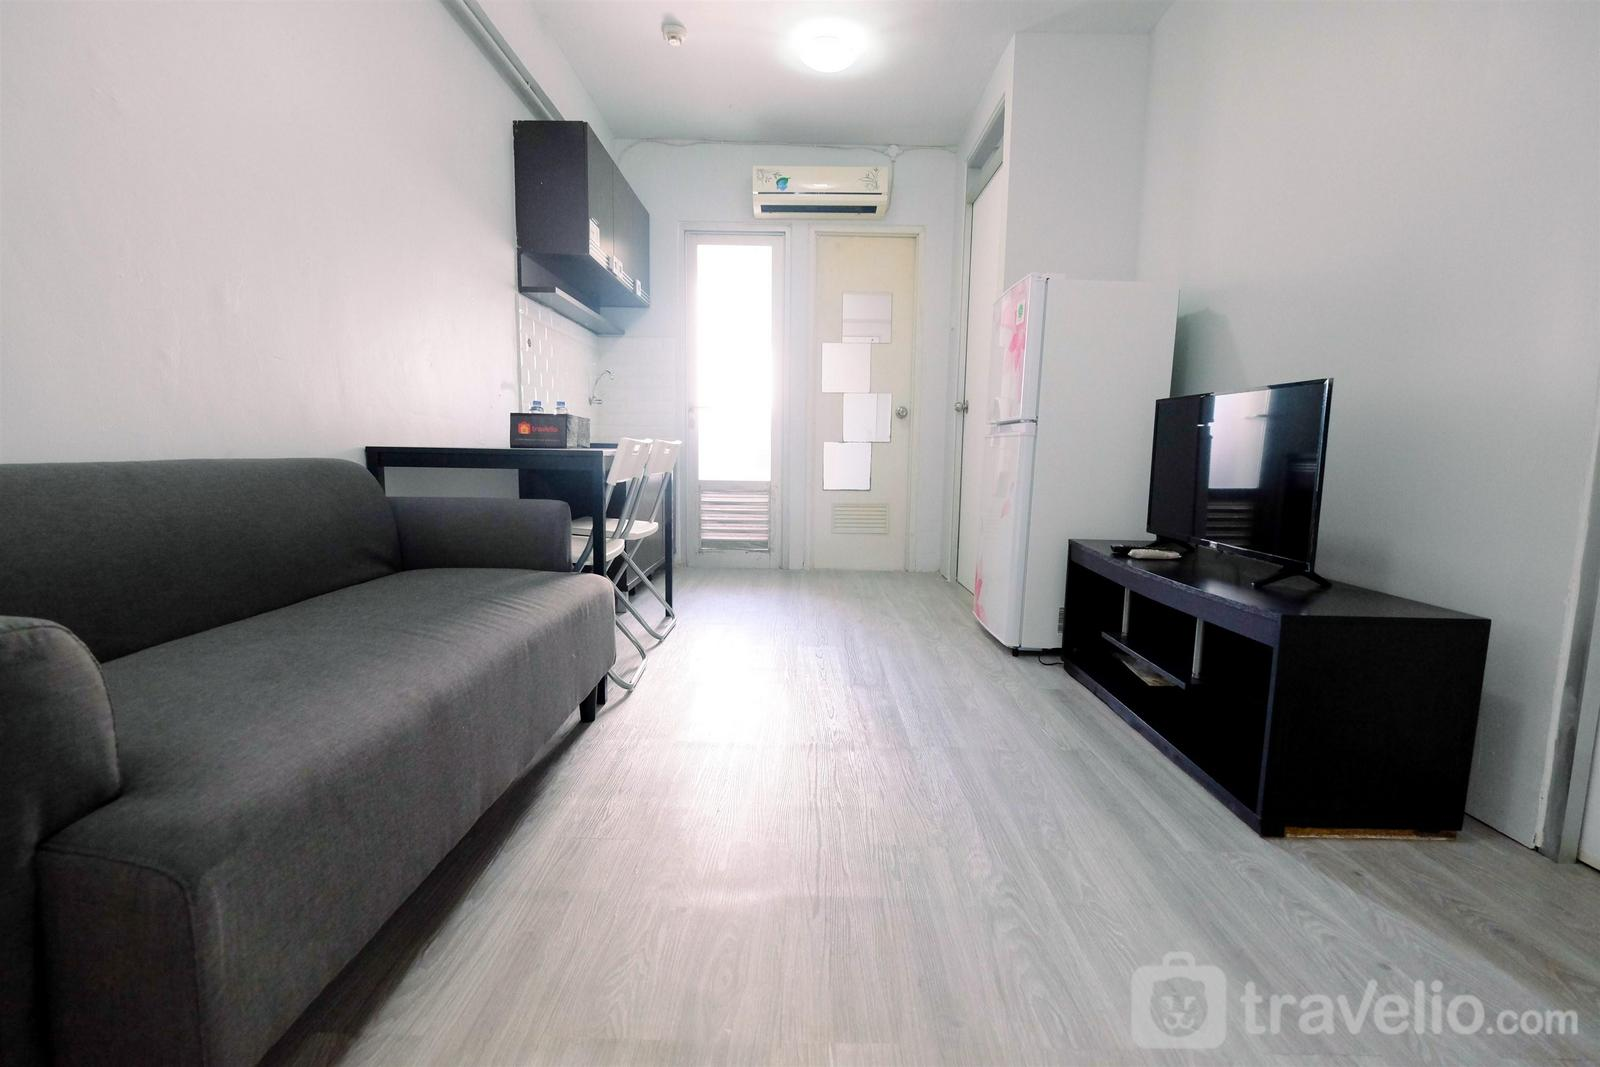 Gading Nias Residence - Homey 2BR at Gading Nias Residences Apartment By Travelio